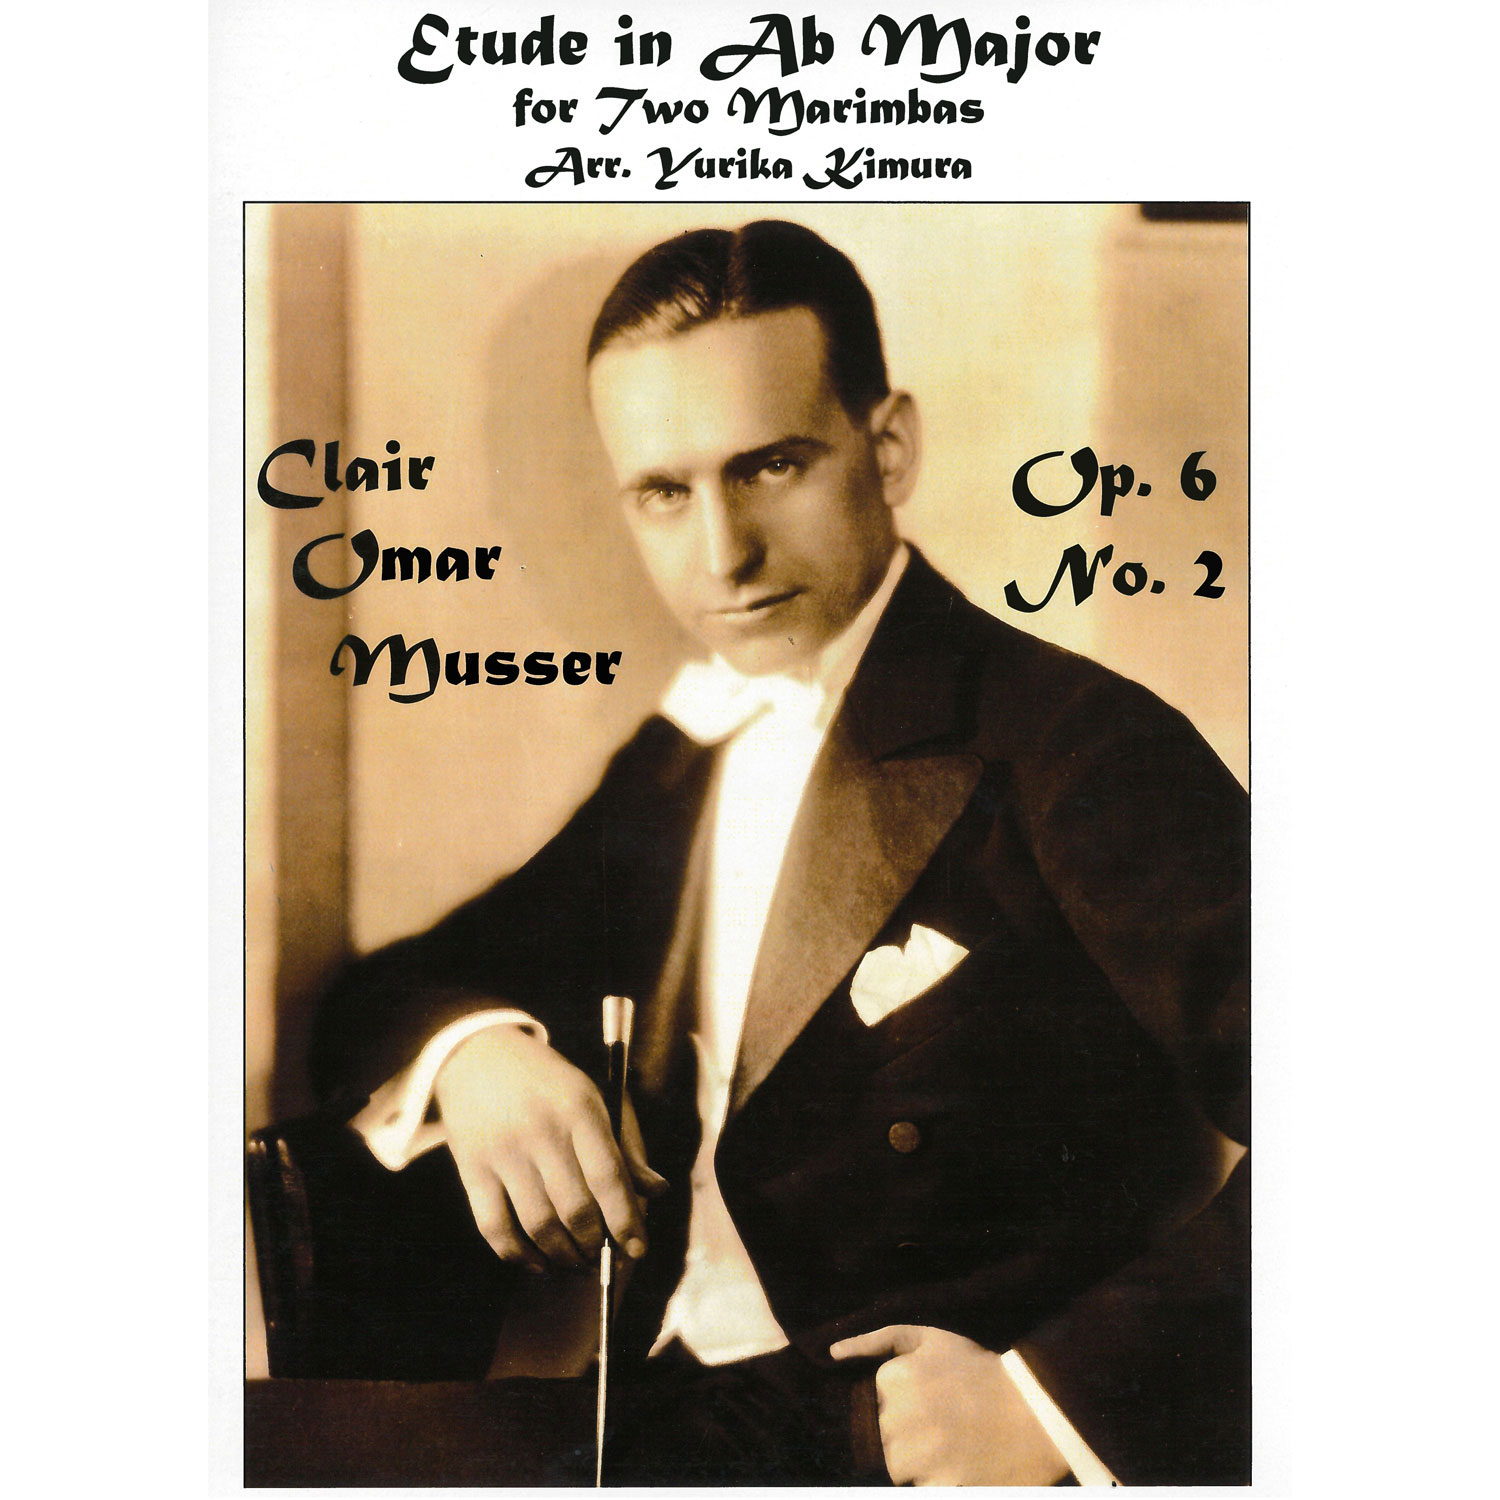 Etude in Ab Major Op. 6 No. 2 for Two Marimbas by Clair Omar Musser arr. Kimura